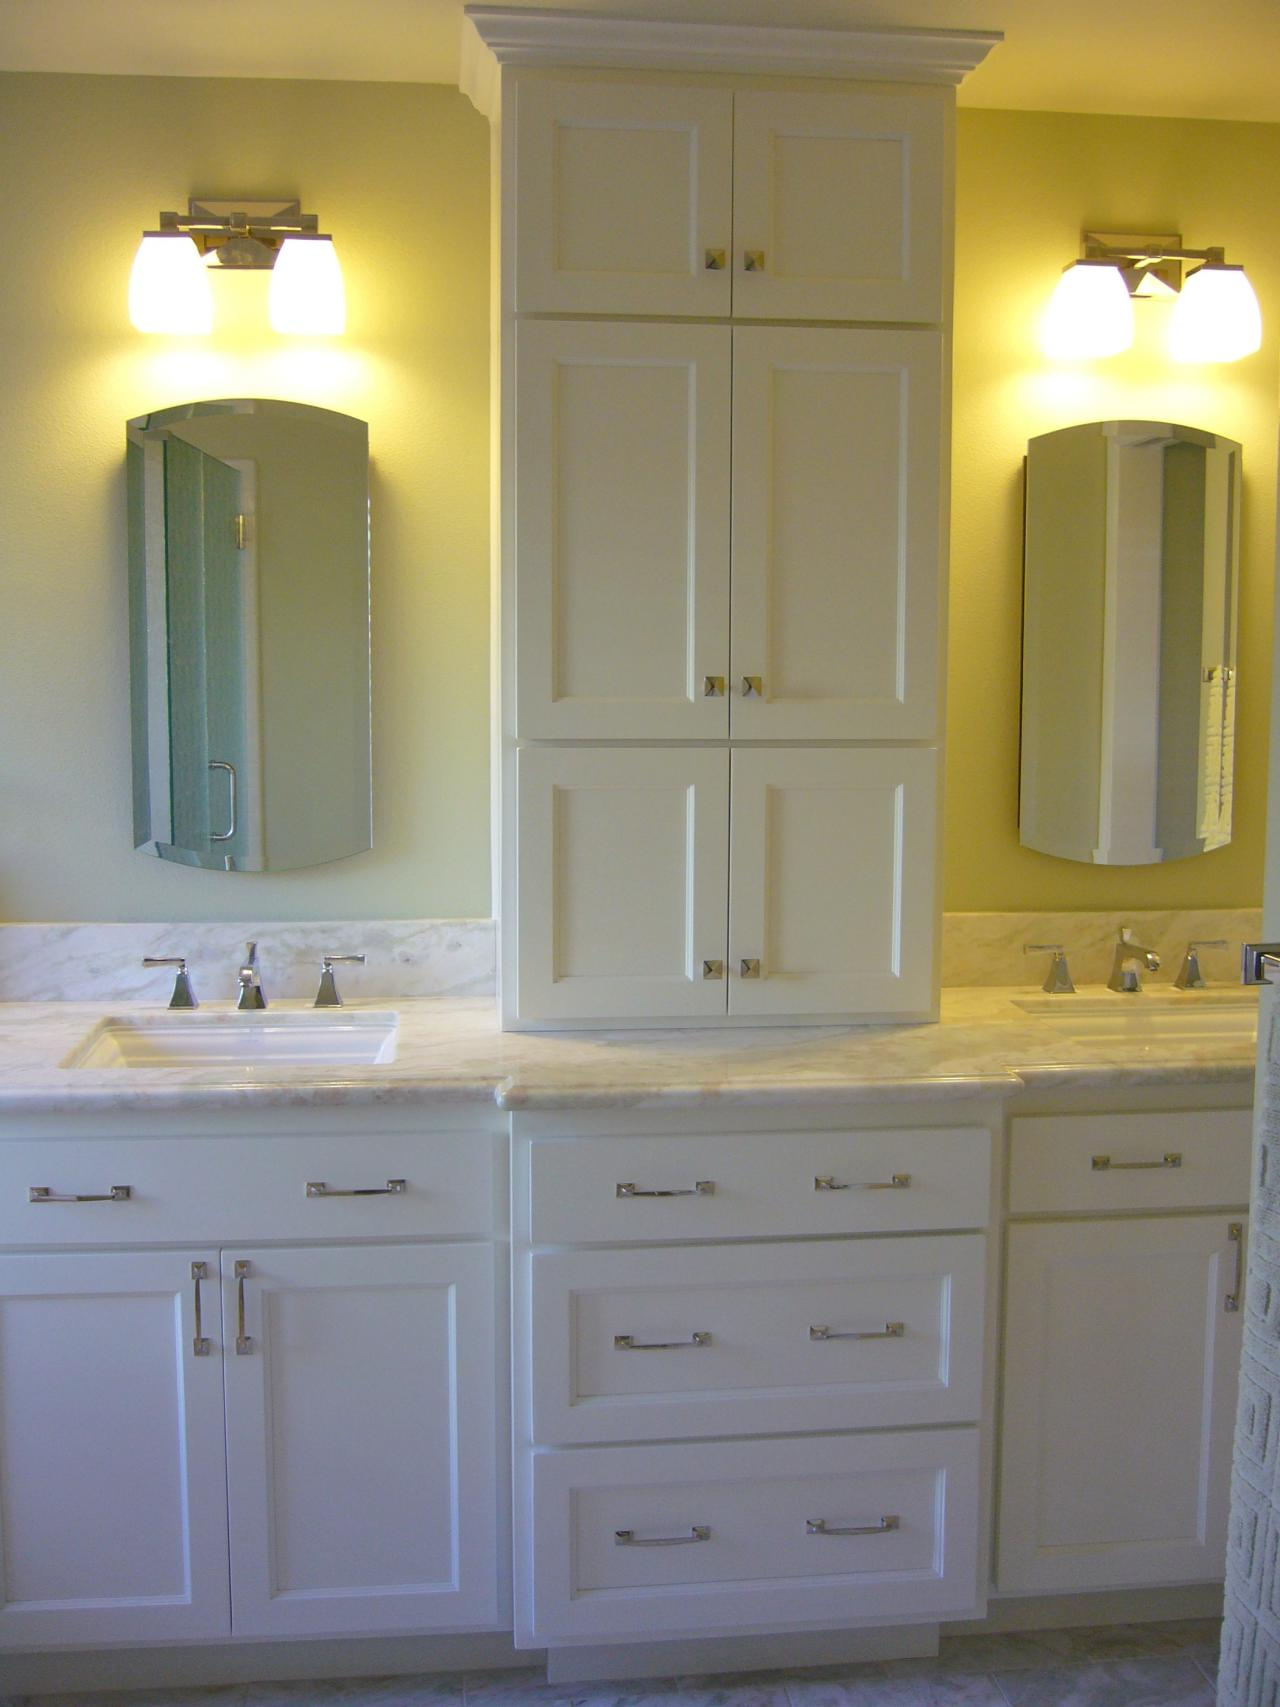 Bathroom vanities for any style bathroom ideas designs Double vanity ideas bathroom